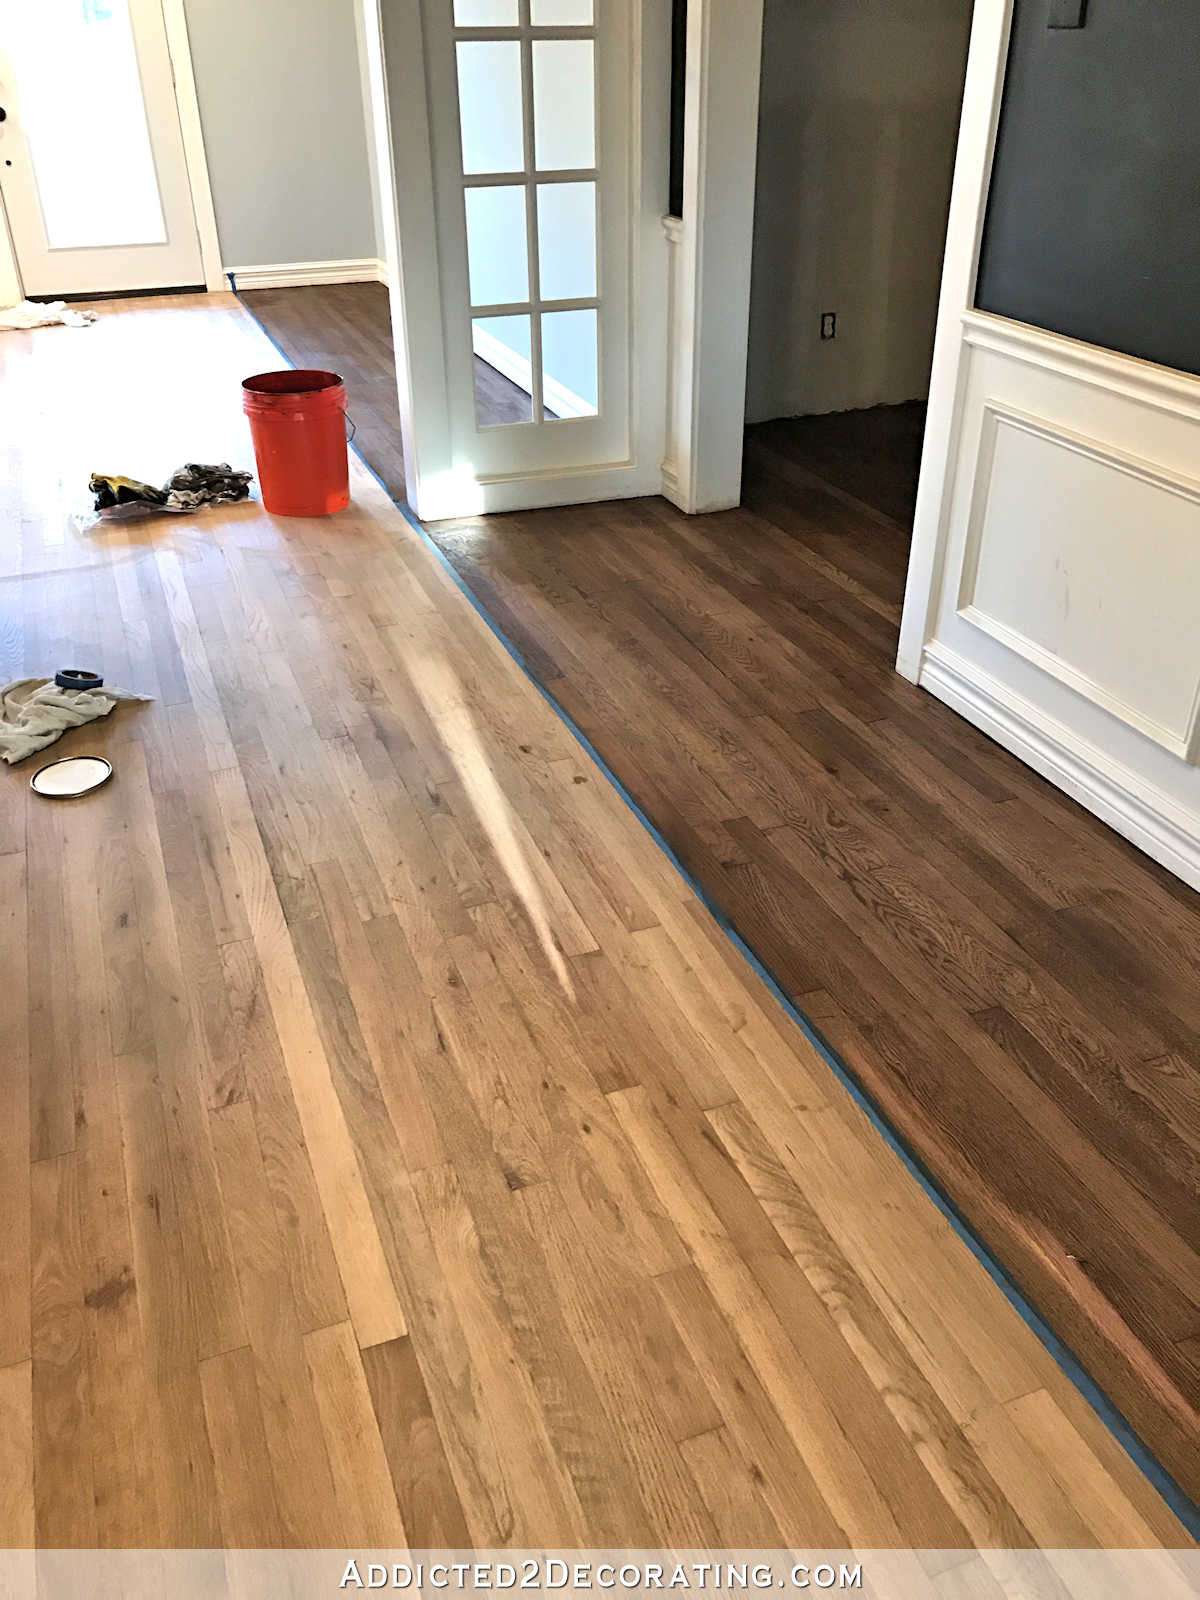 how to repair and refinish hardwood floors of adventures in staining my red oak hardwood floors products process with staining red oak hardwood floors 6 stain on partial floor in entryway and music